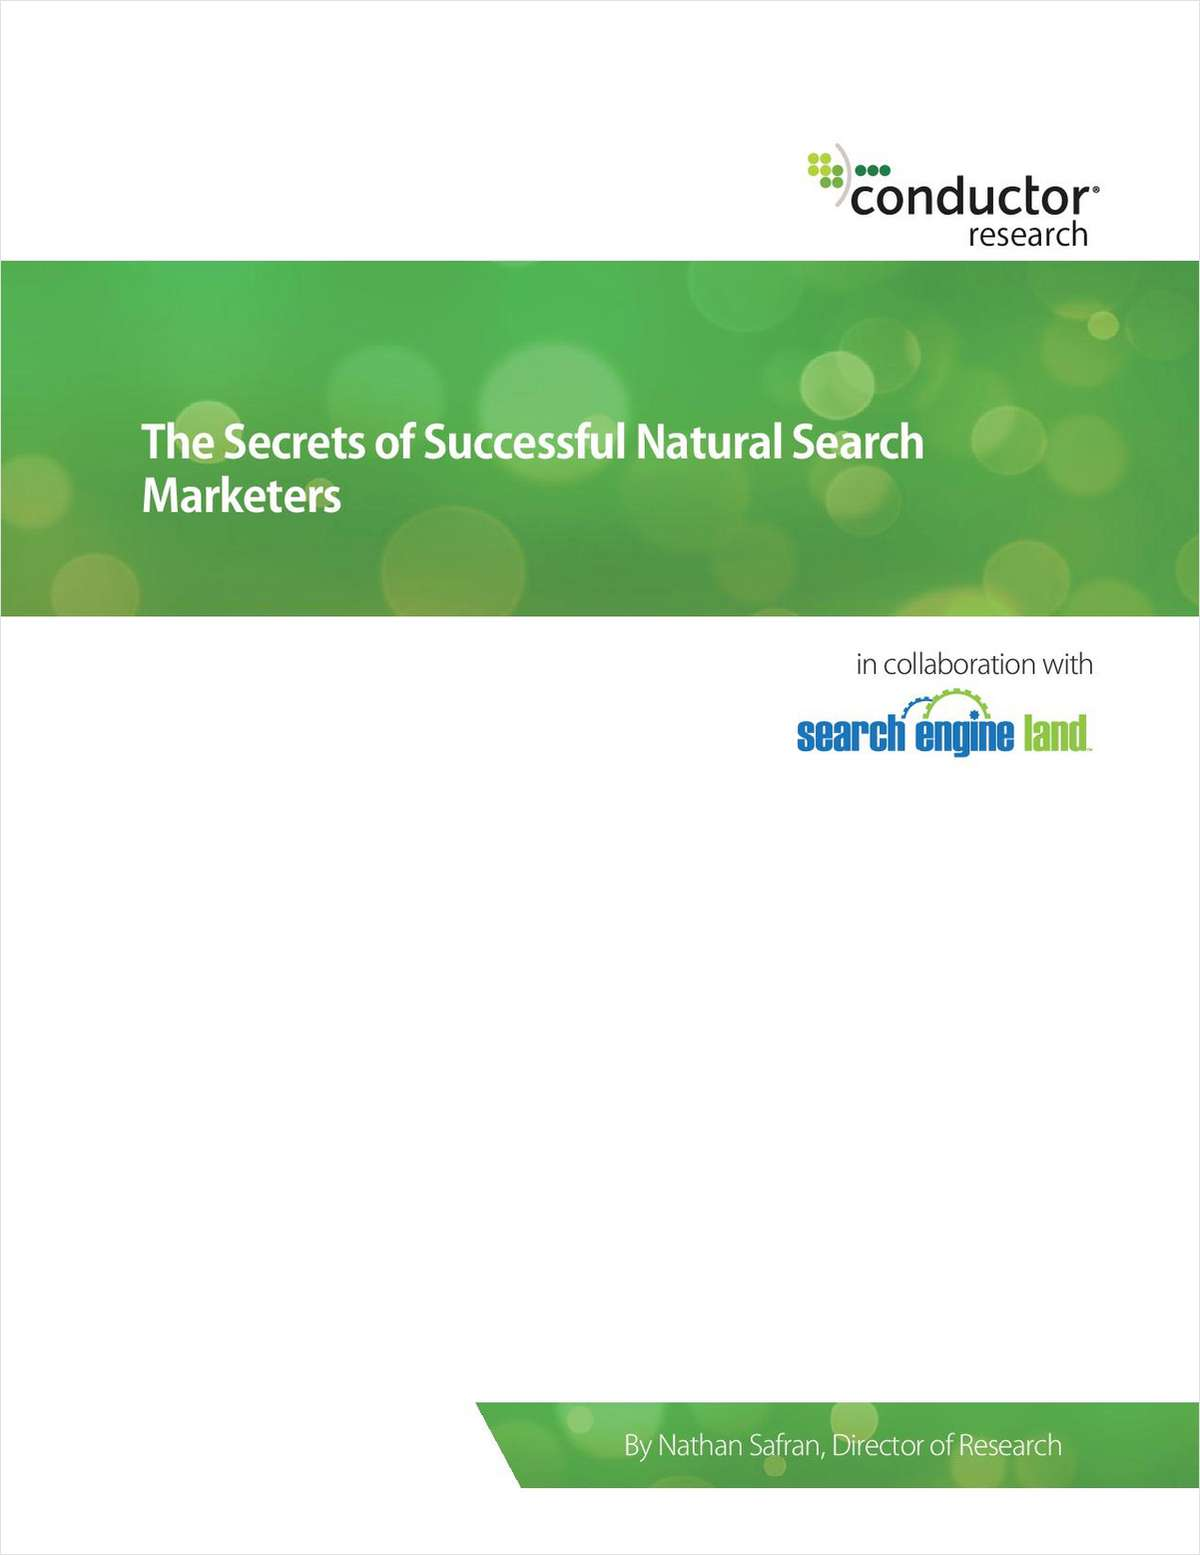 Secrets of Successful Search Marketers